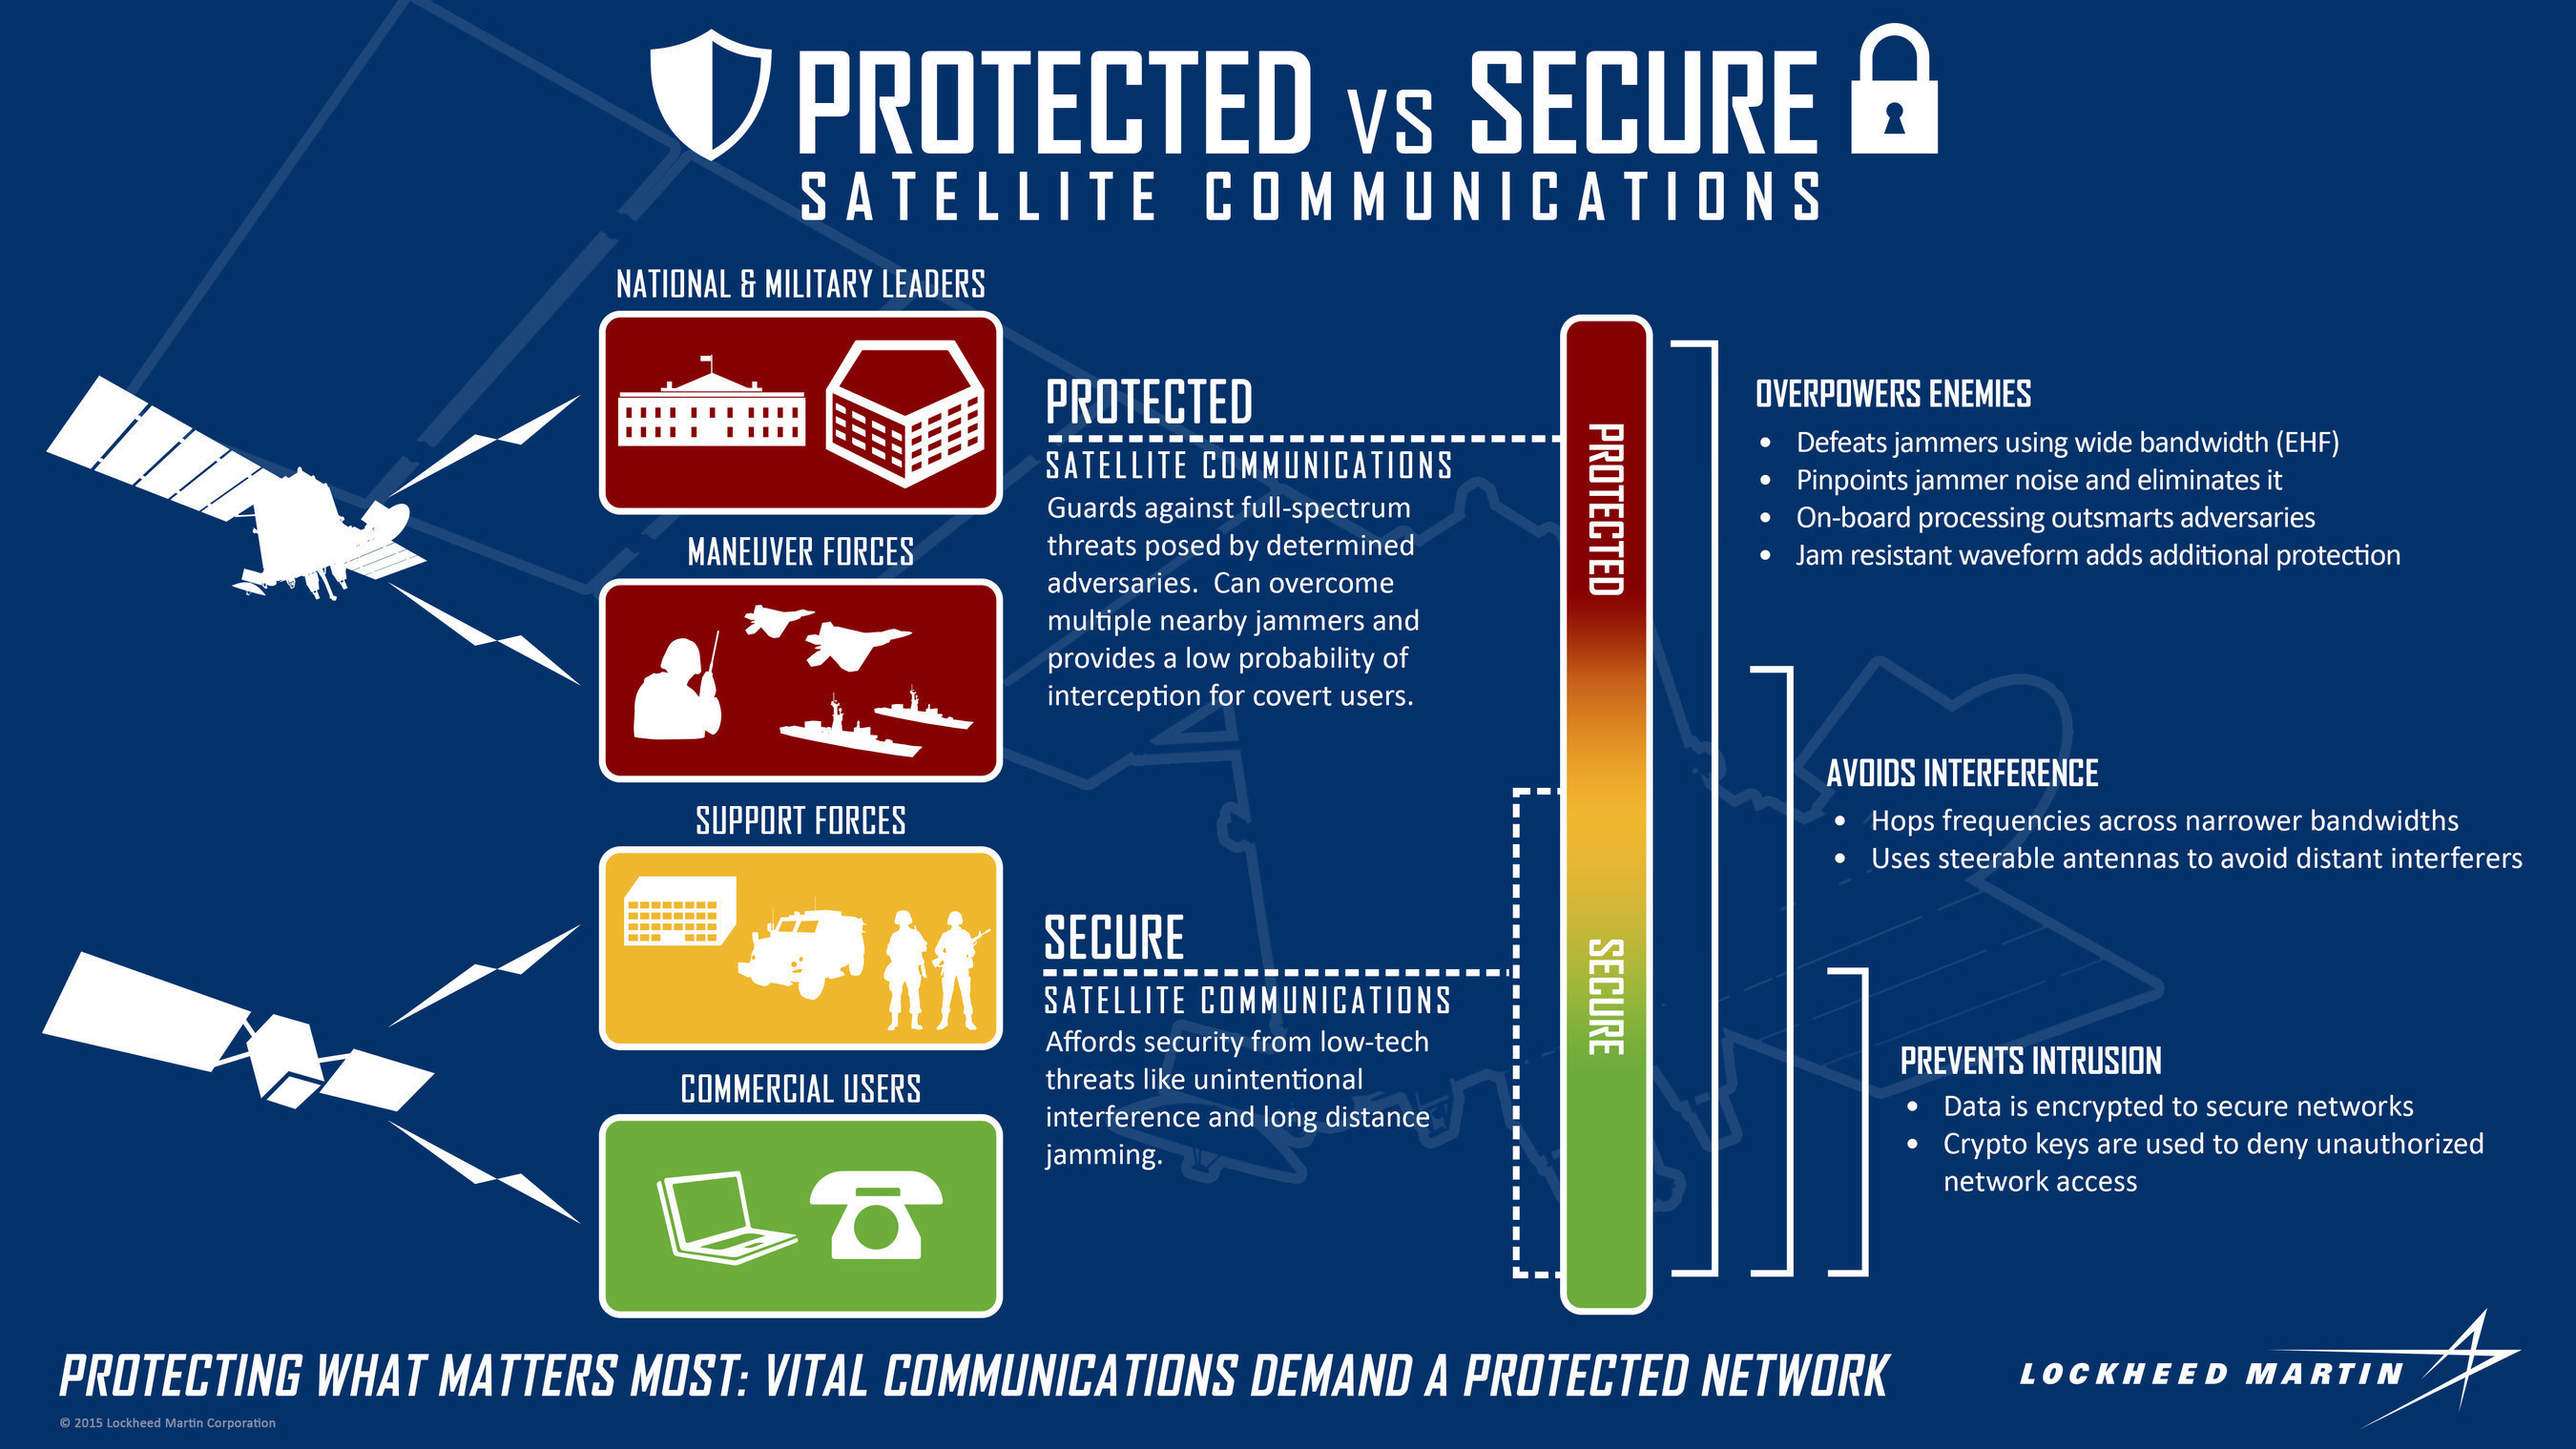 When it comes to satellite communications, do you know the difference between protected and secure? This ...